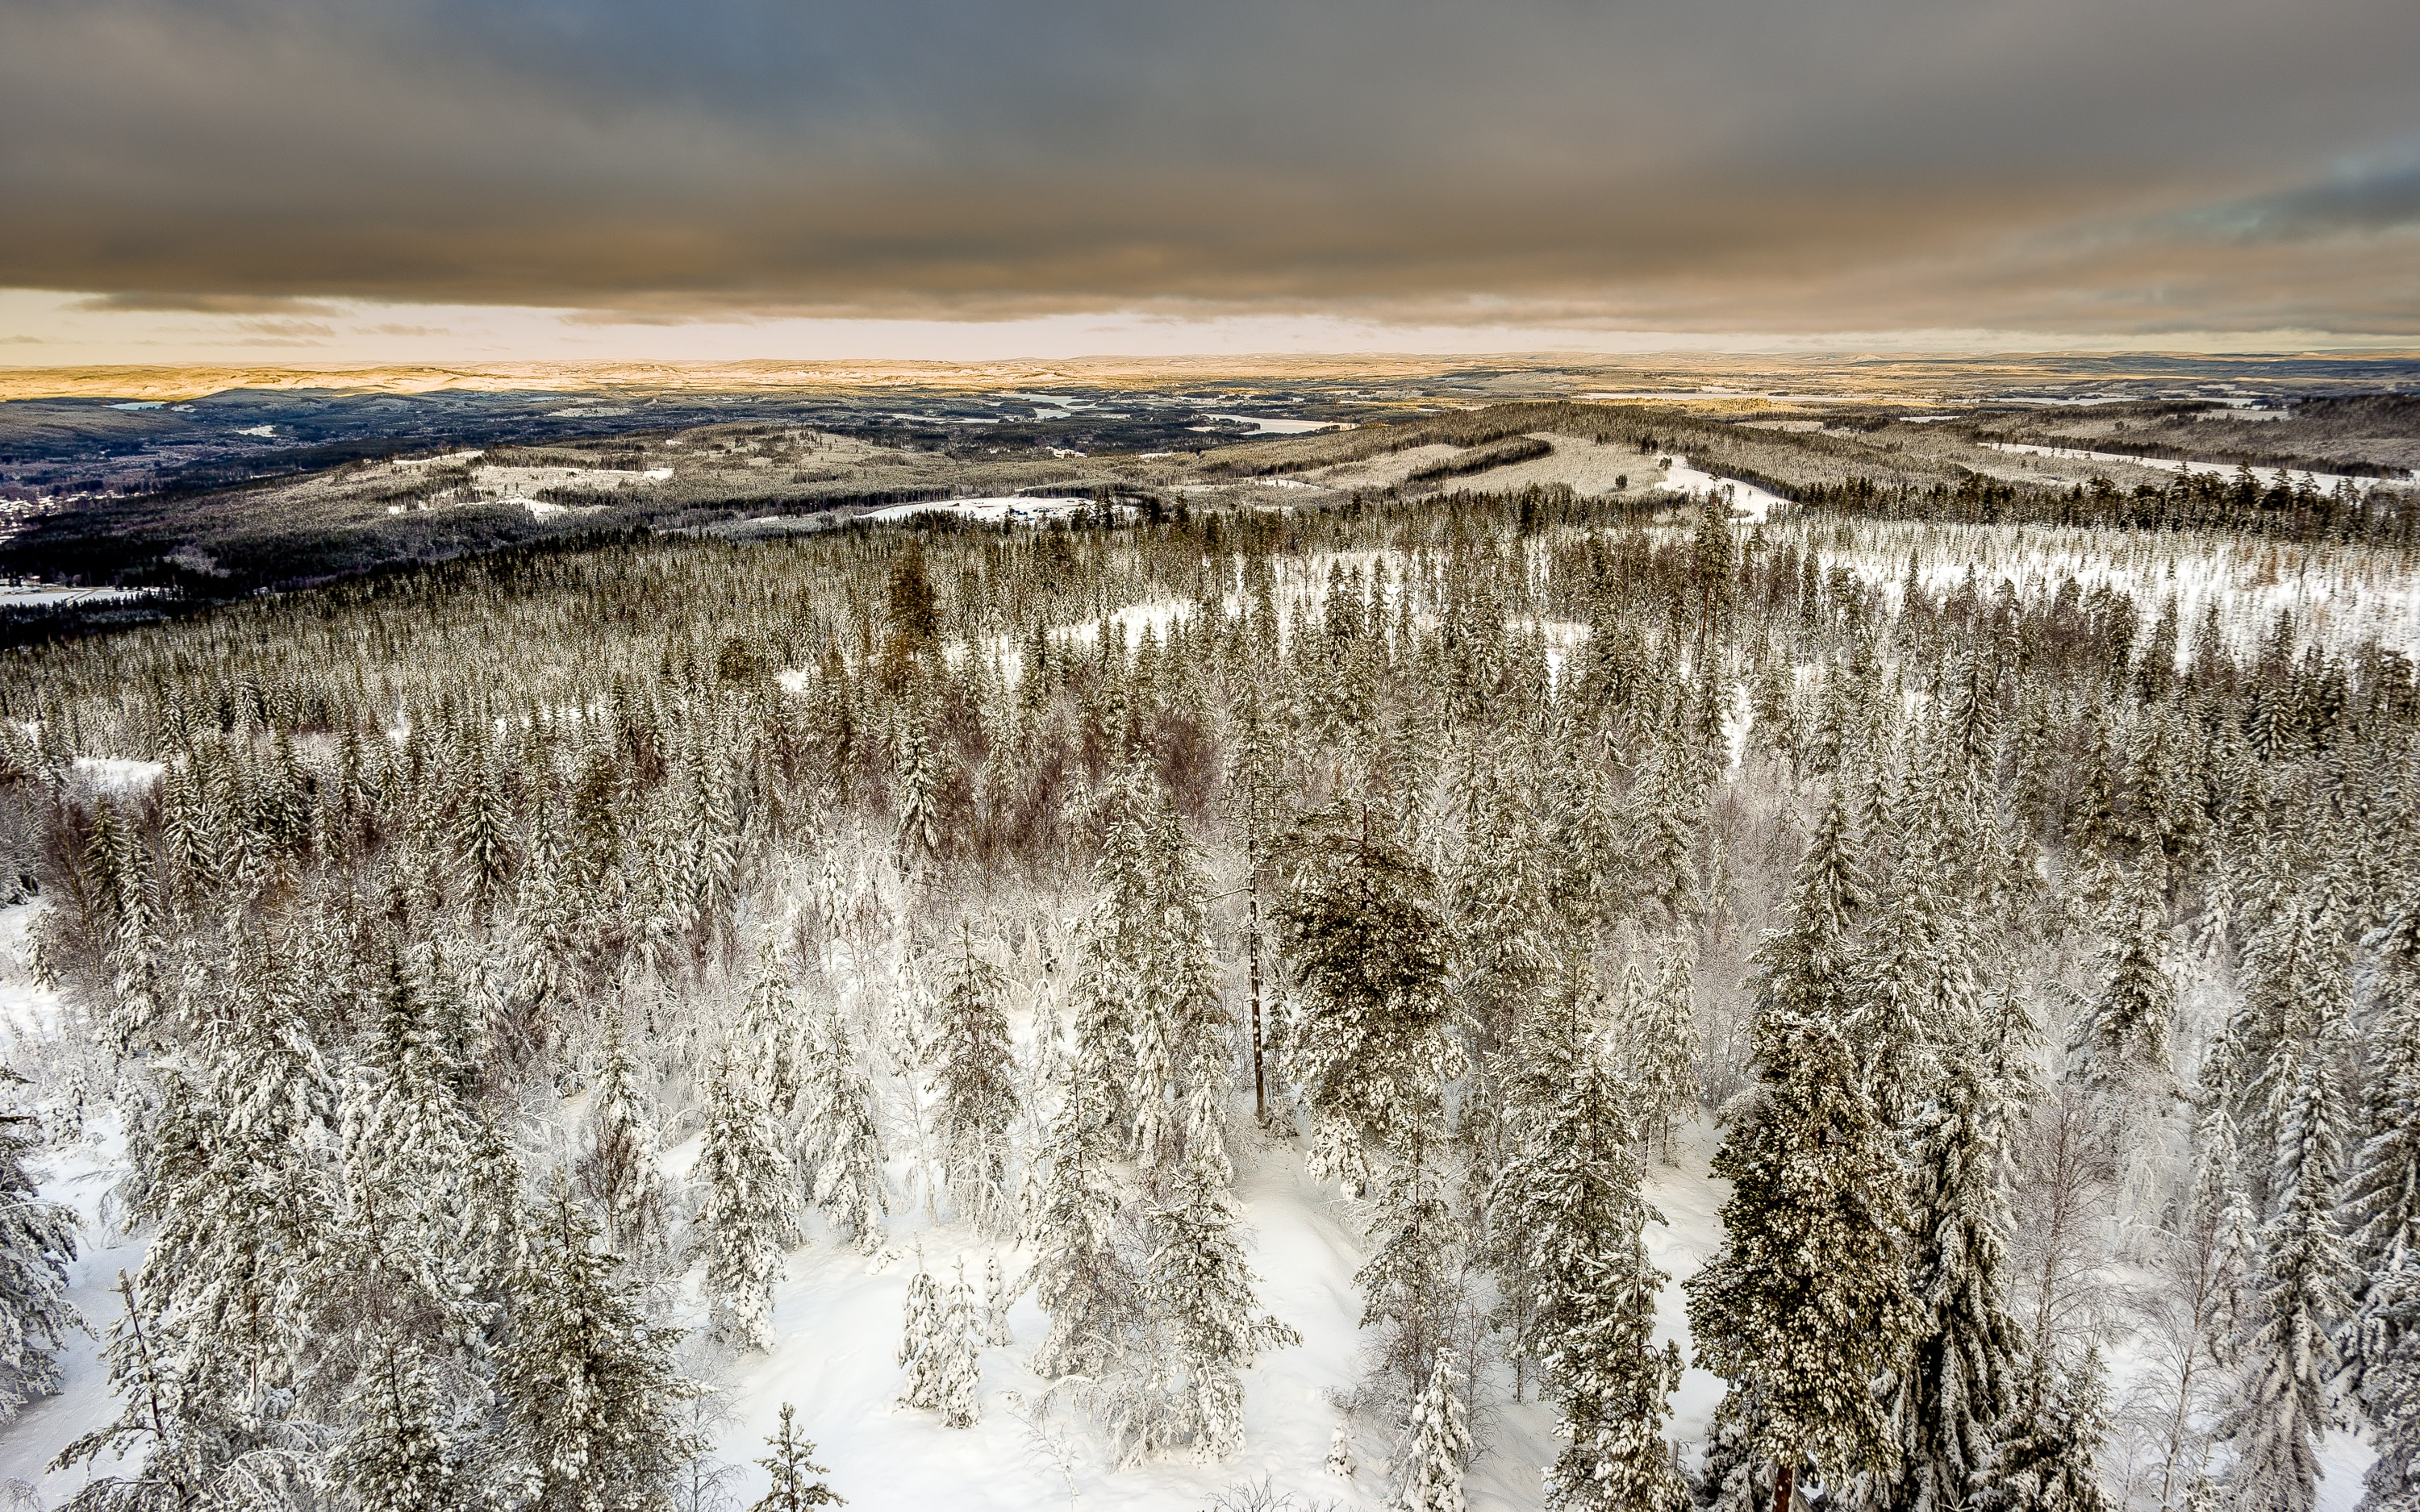 A drone shot taken above a forest during a snowy winter in Hagfors